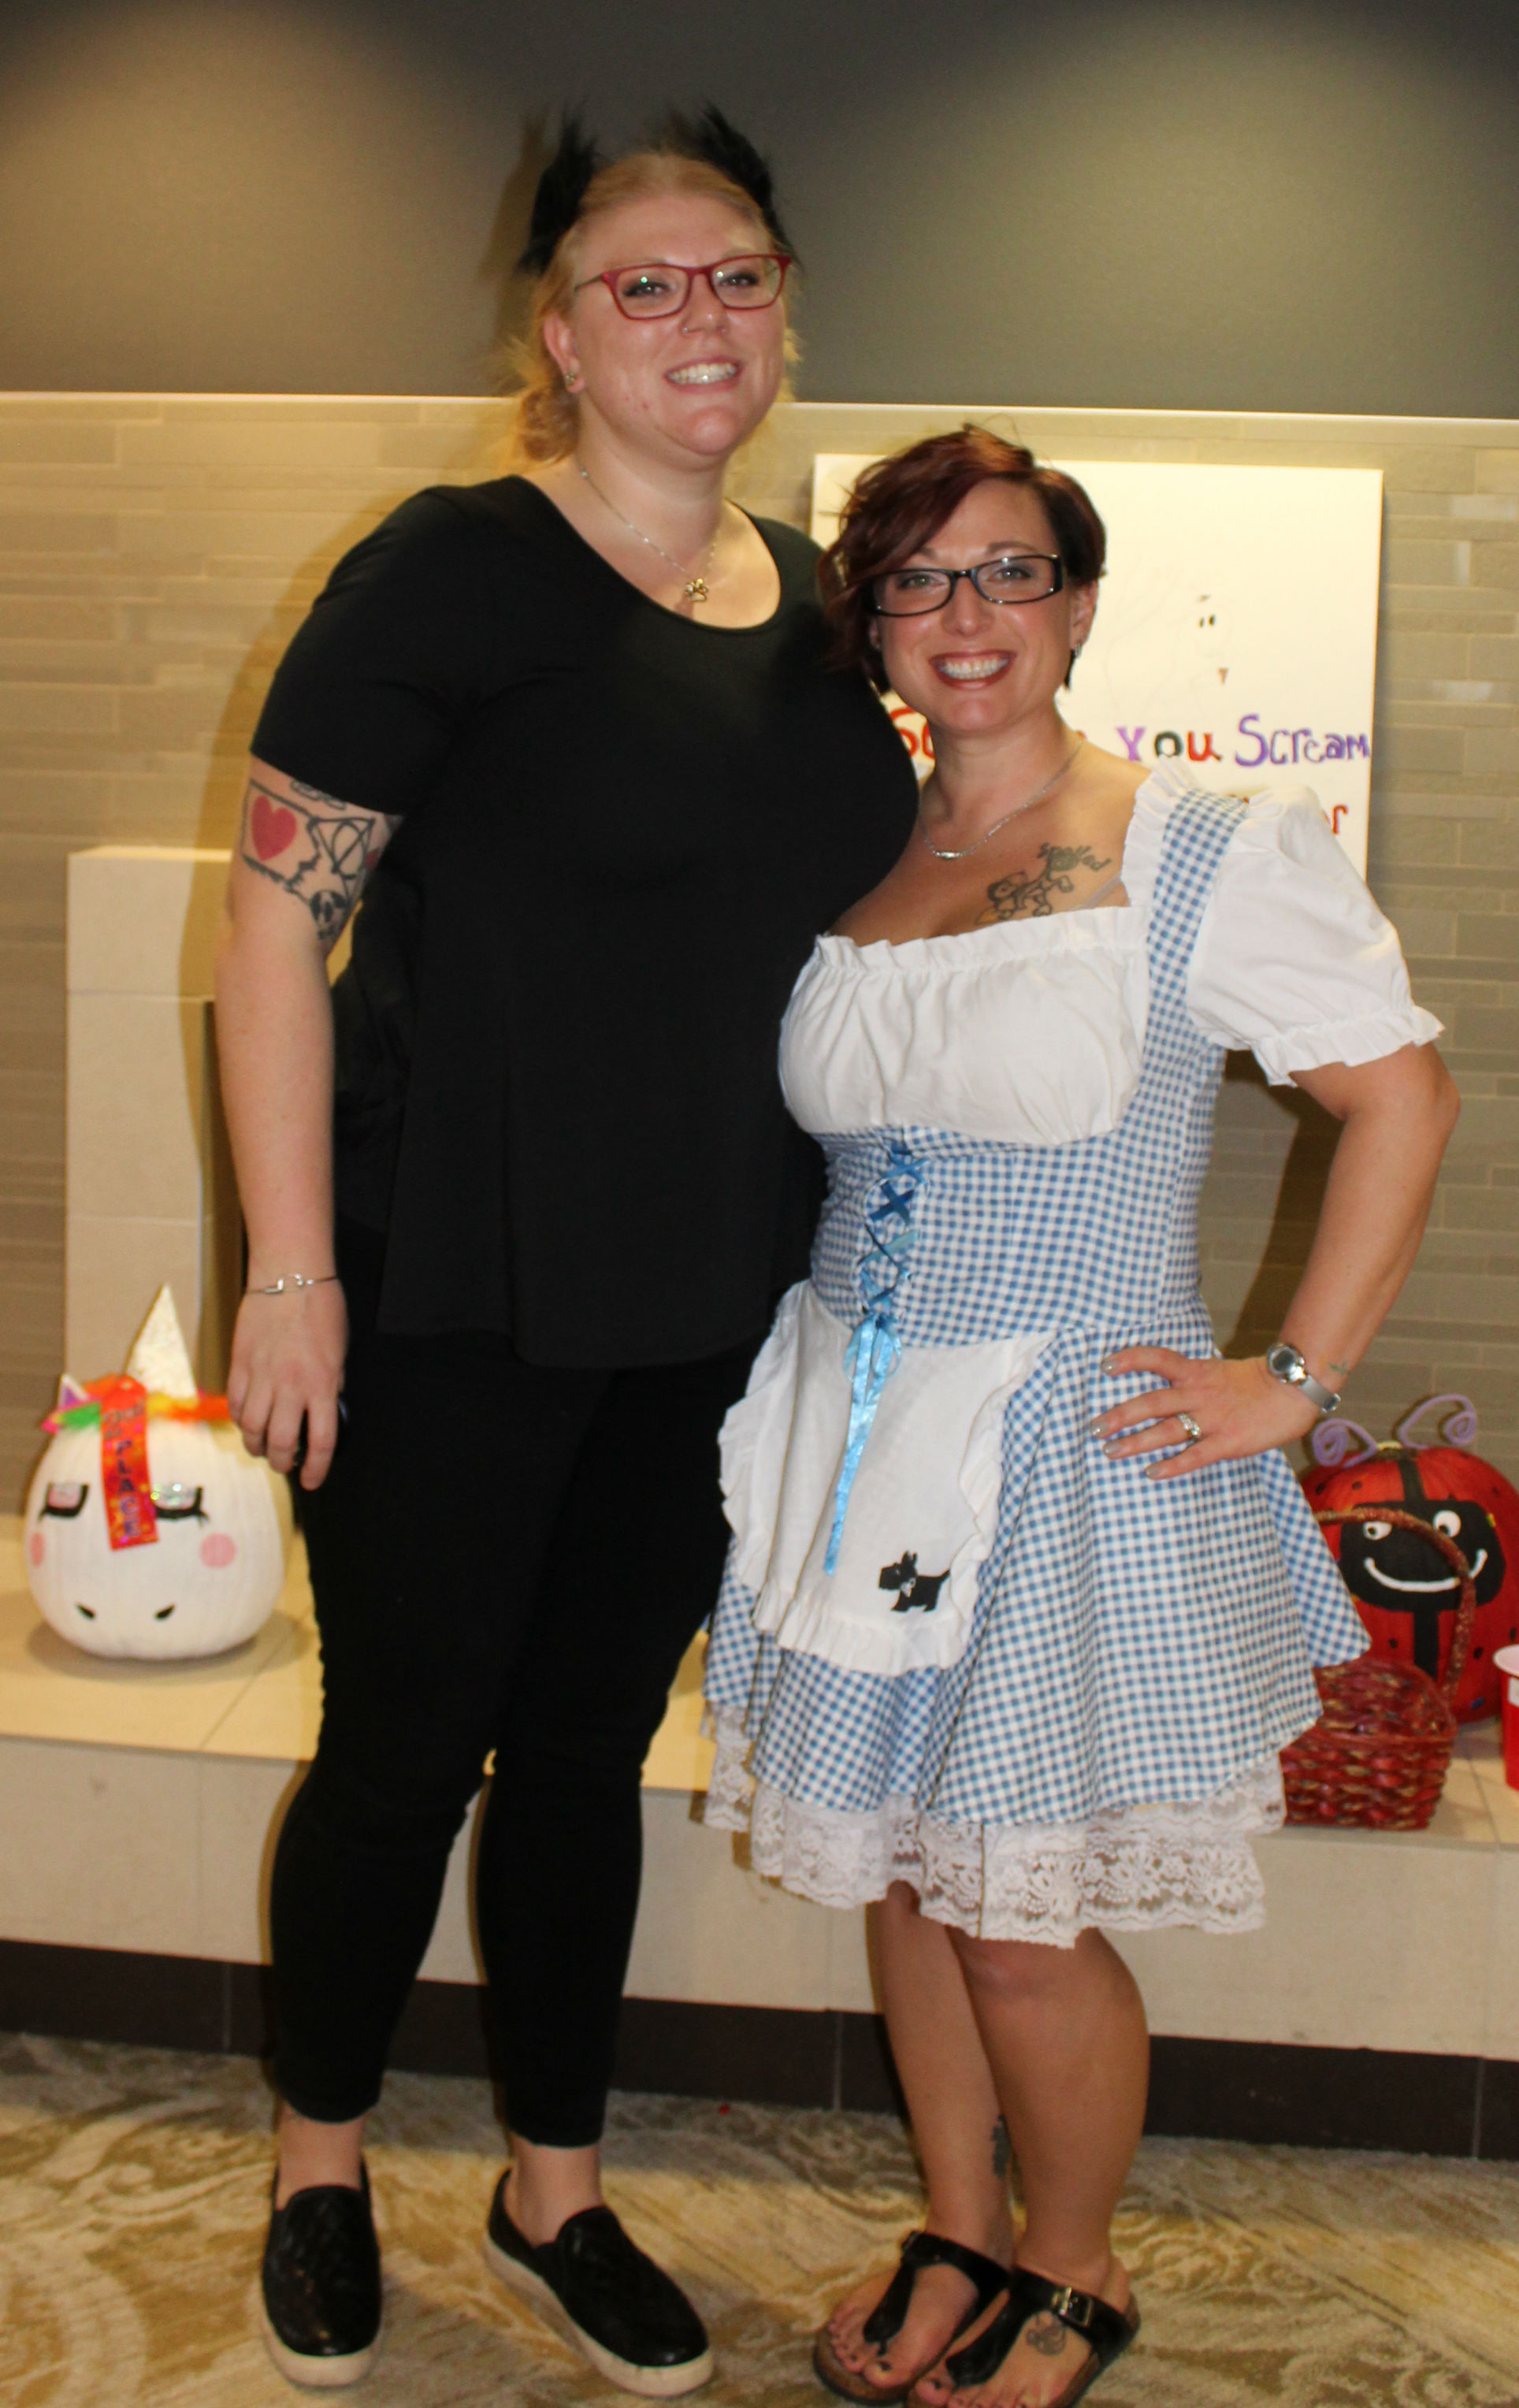 Our very own Dorothy and Toto!